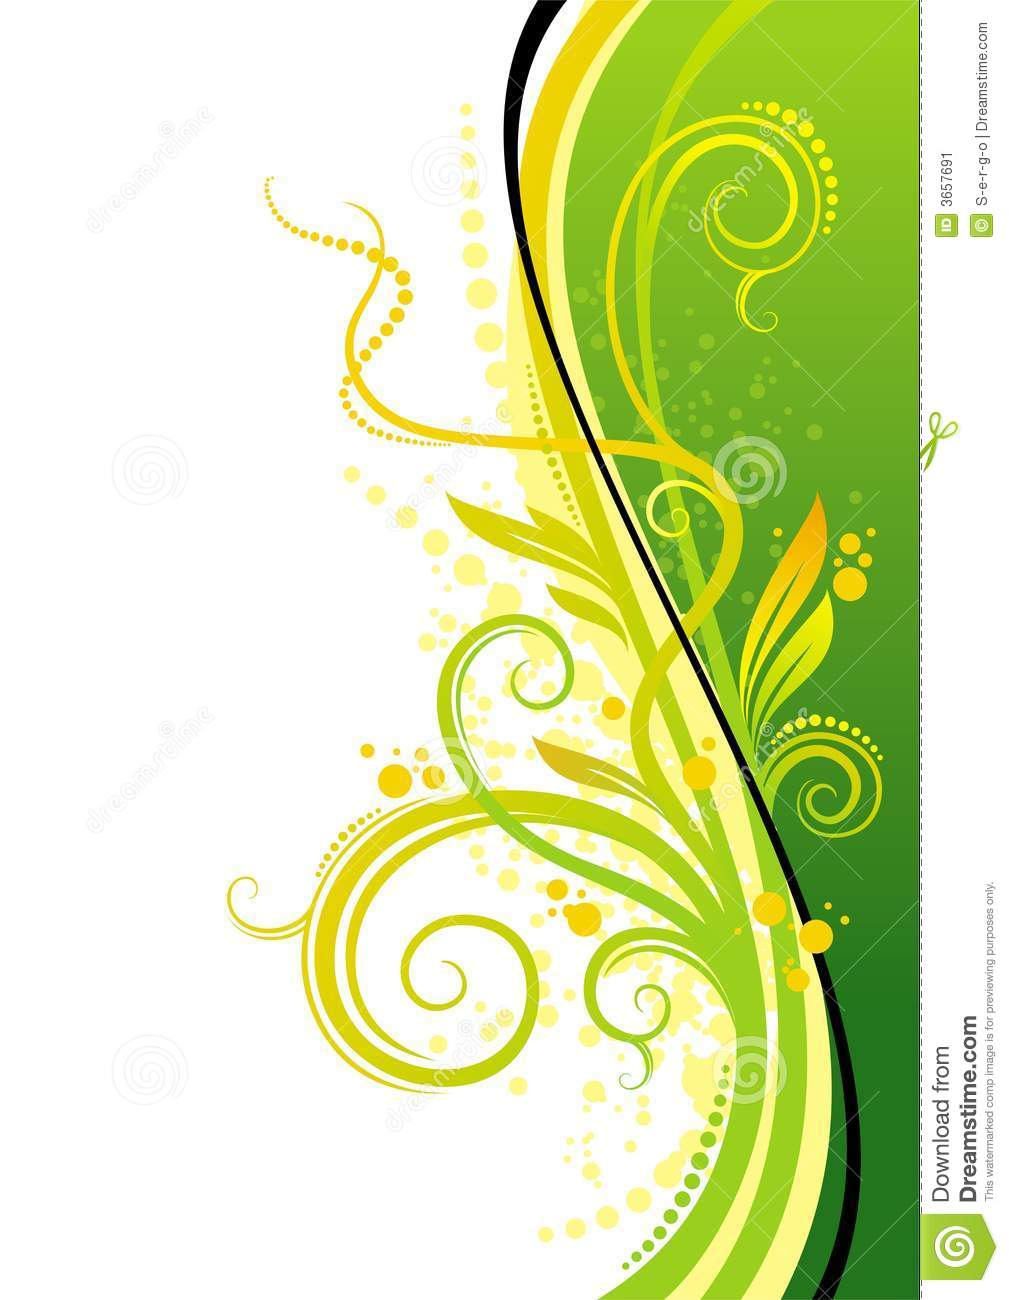 Yellow green design stock image image 3657691 for Green design